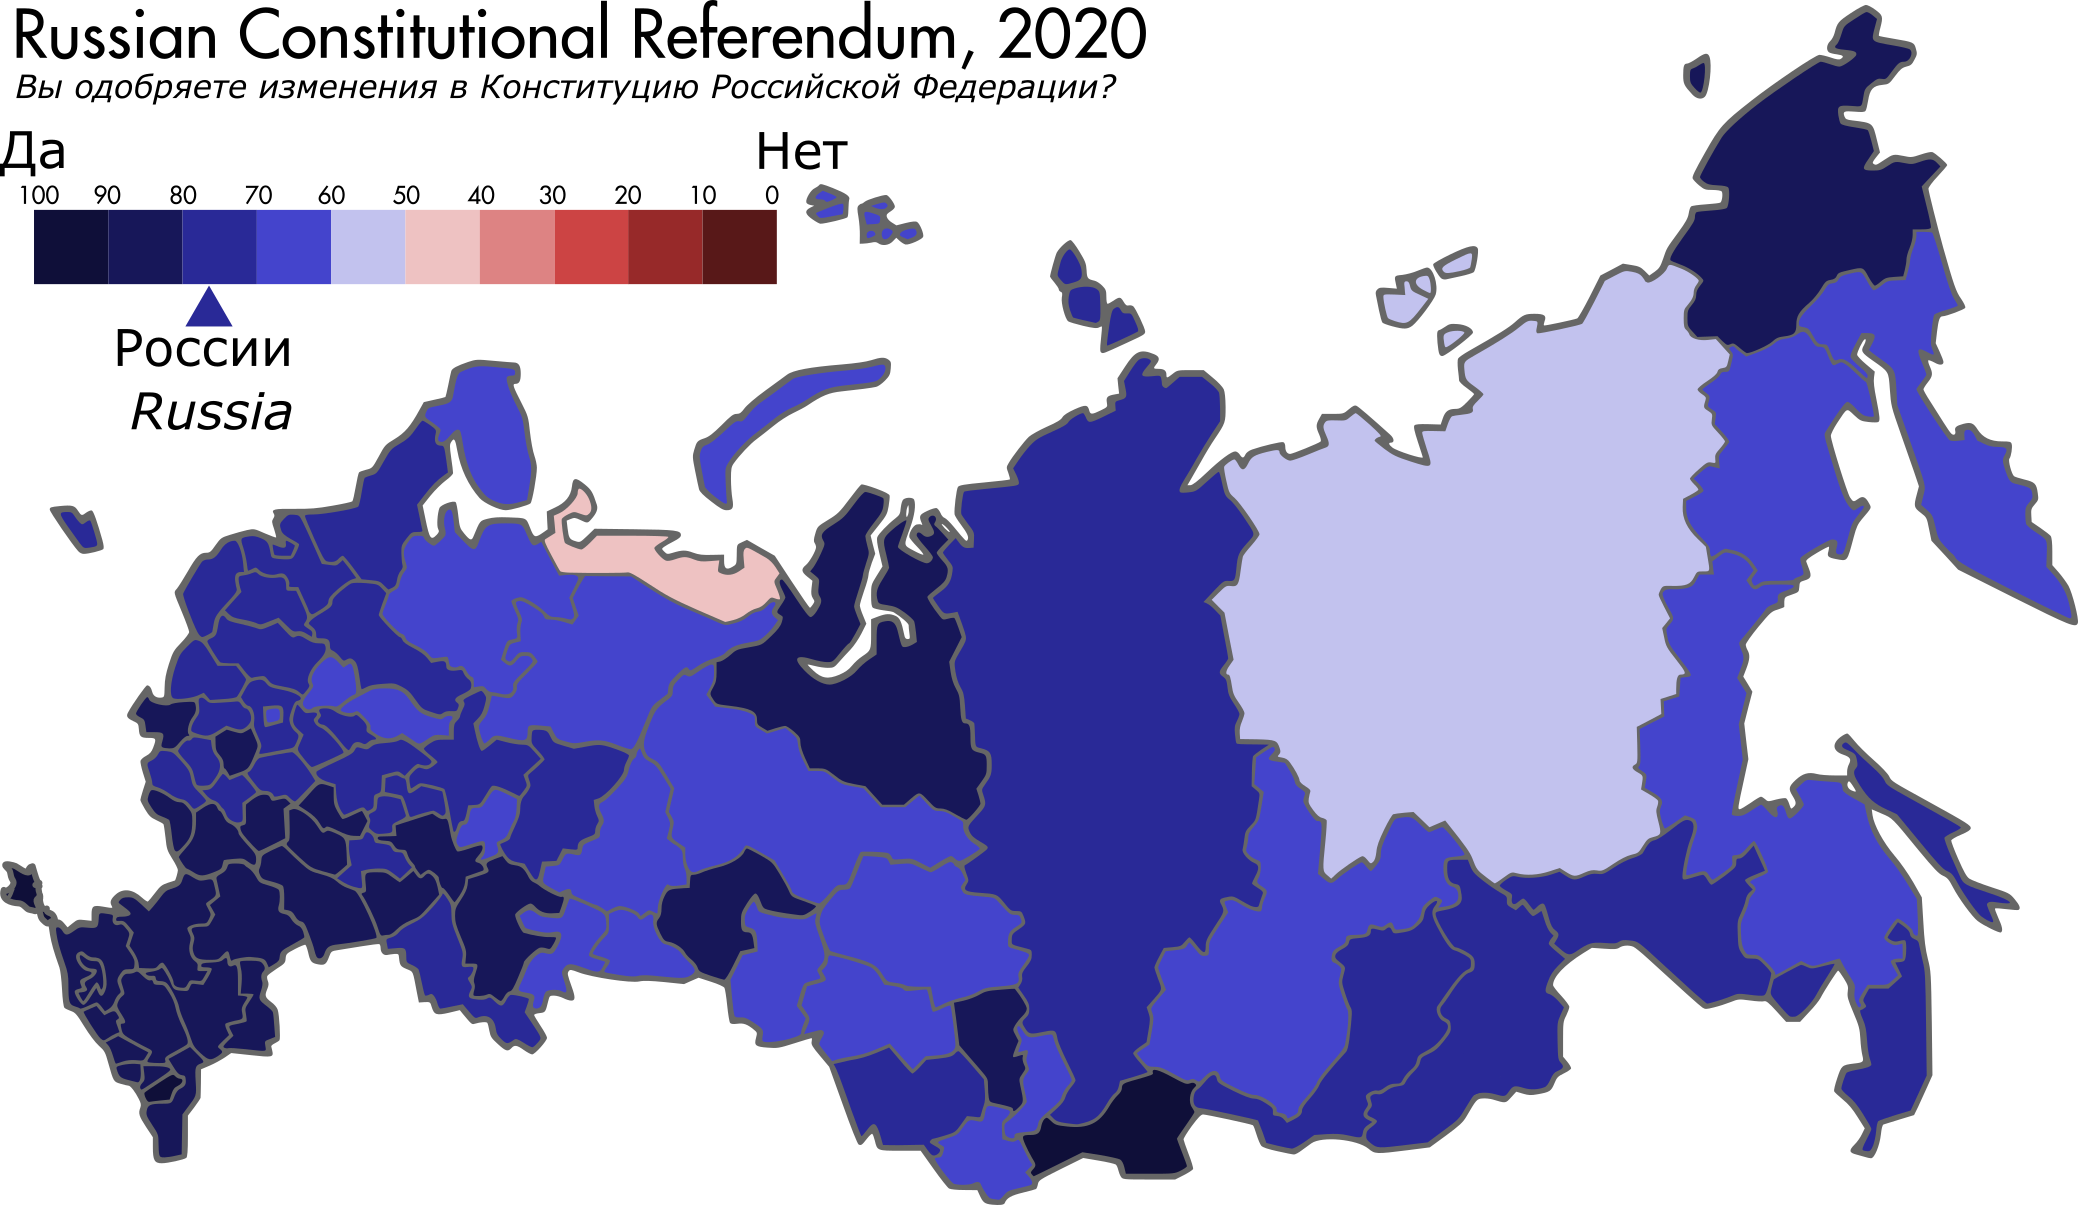 Blank_map_of_Russia-gray.png